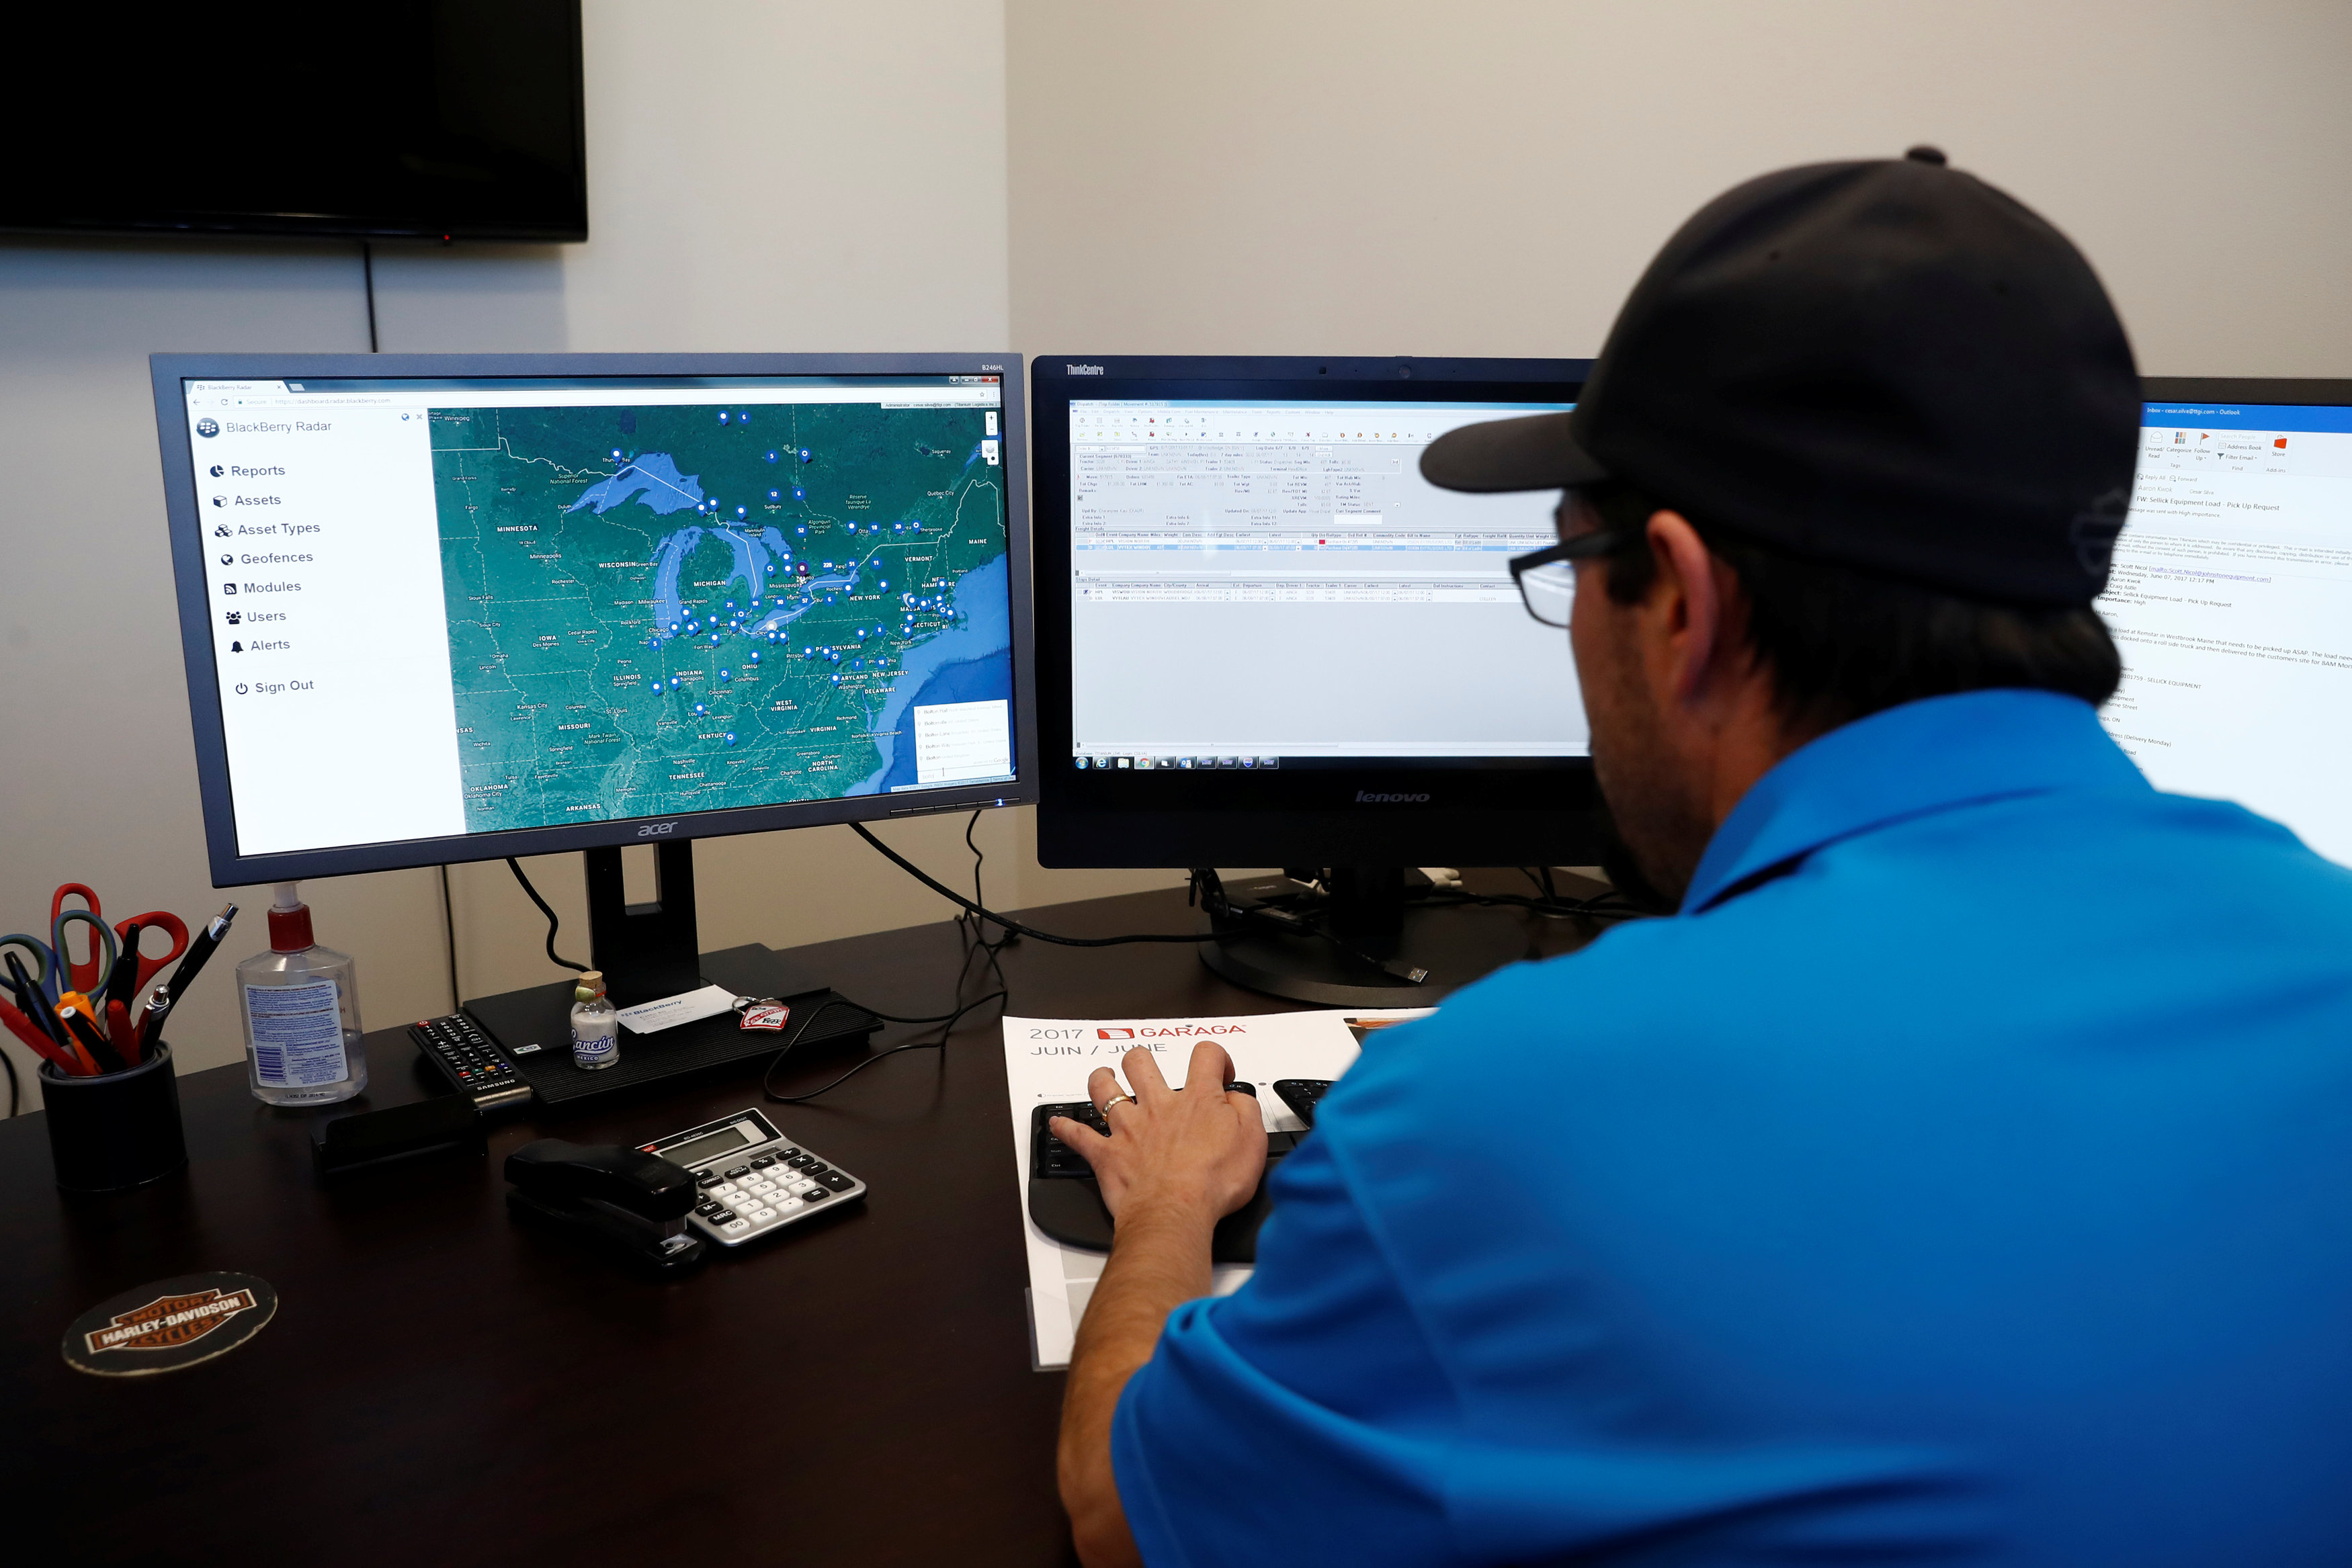 An operator demonstrates the software used in the BlackBerry fleet-tracking service known as Radar, which uses $400 boxes to collect and transmit information on movement, temperature and physical contents of truck trailers, at the Titanium Transportation trucking firm in Bolton, Ontario, Canada on June 7, 2017. Picture taken on June 7, 2017.    REUTERS/Mark Blinch